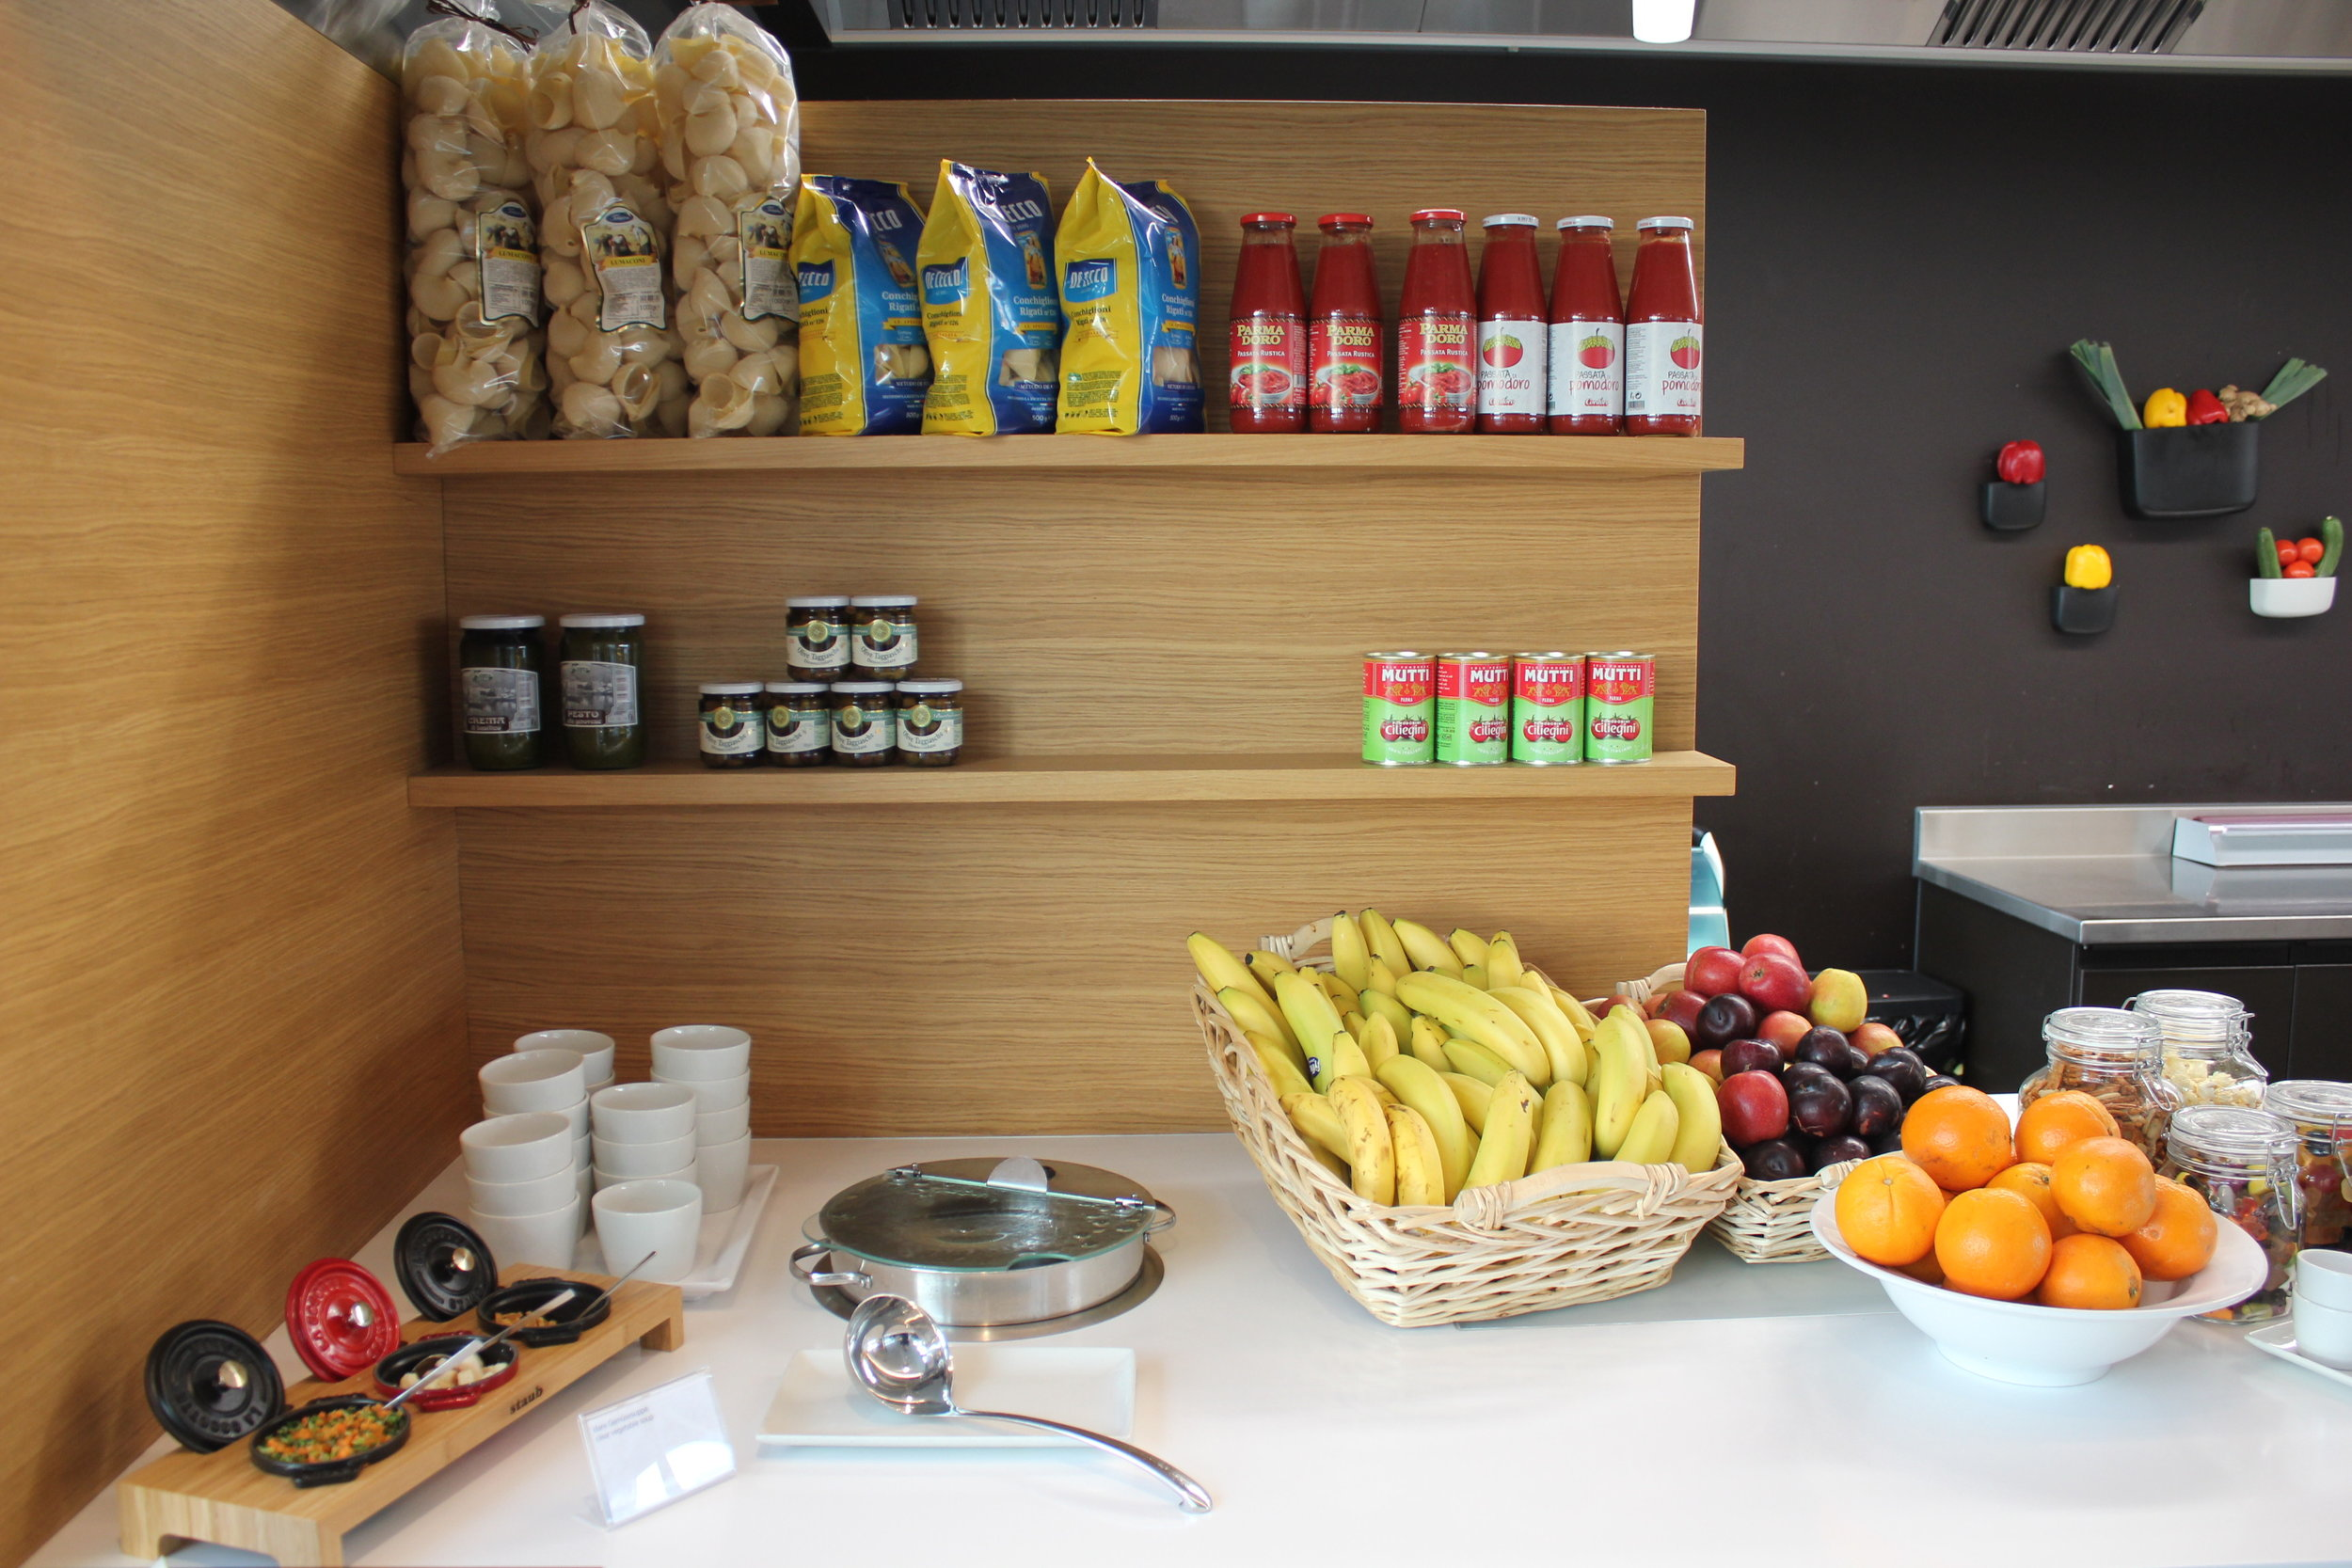 Swiss Senator Lounge Zurich – Fruits and soup